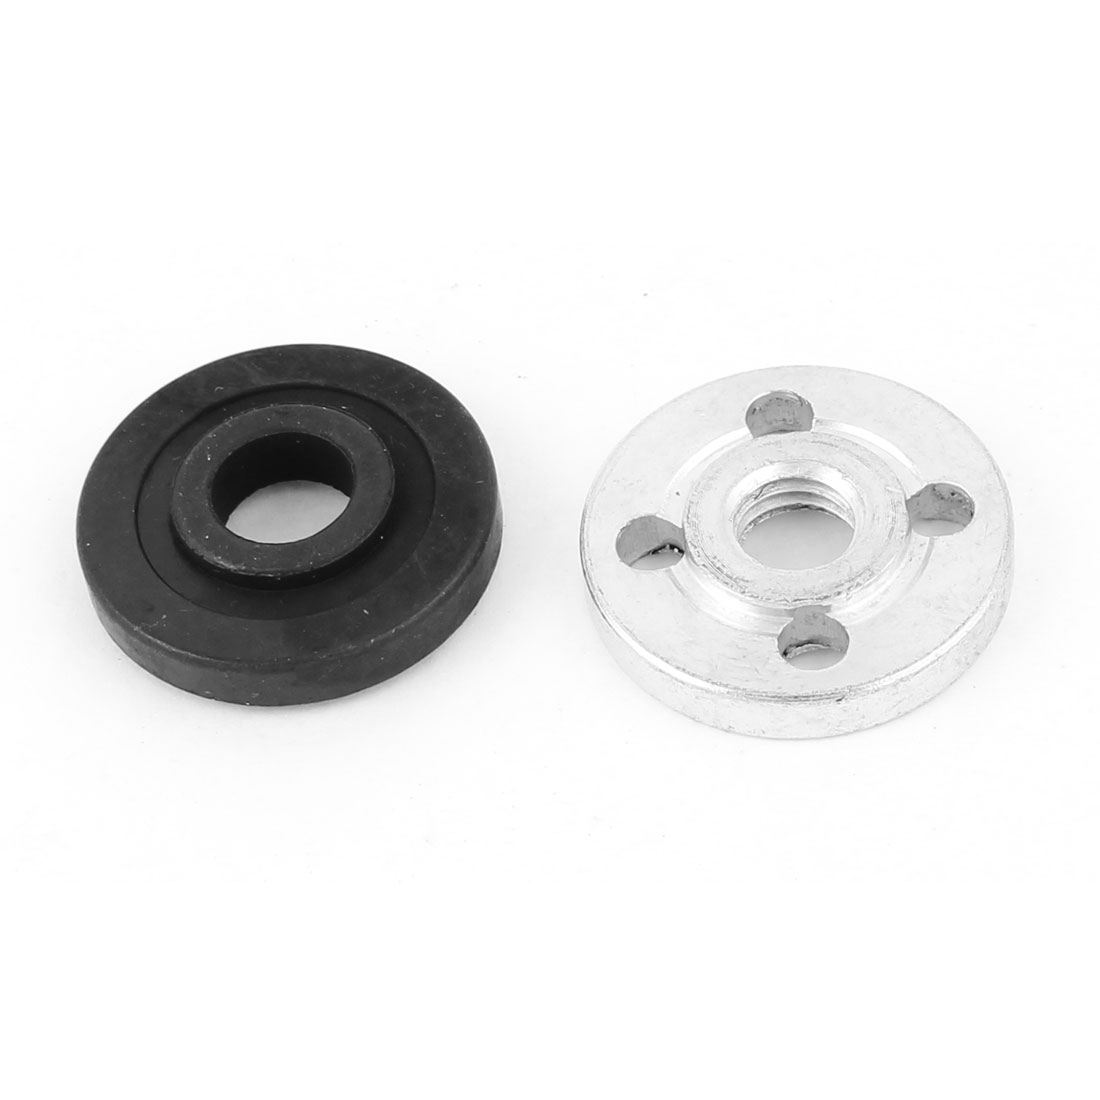 2 Pcs Replacement Metal Electric Part Inner Outer Flange for Angle Grinder